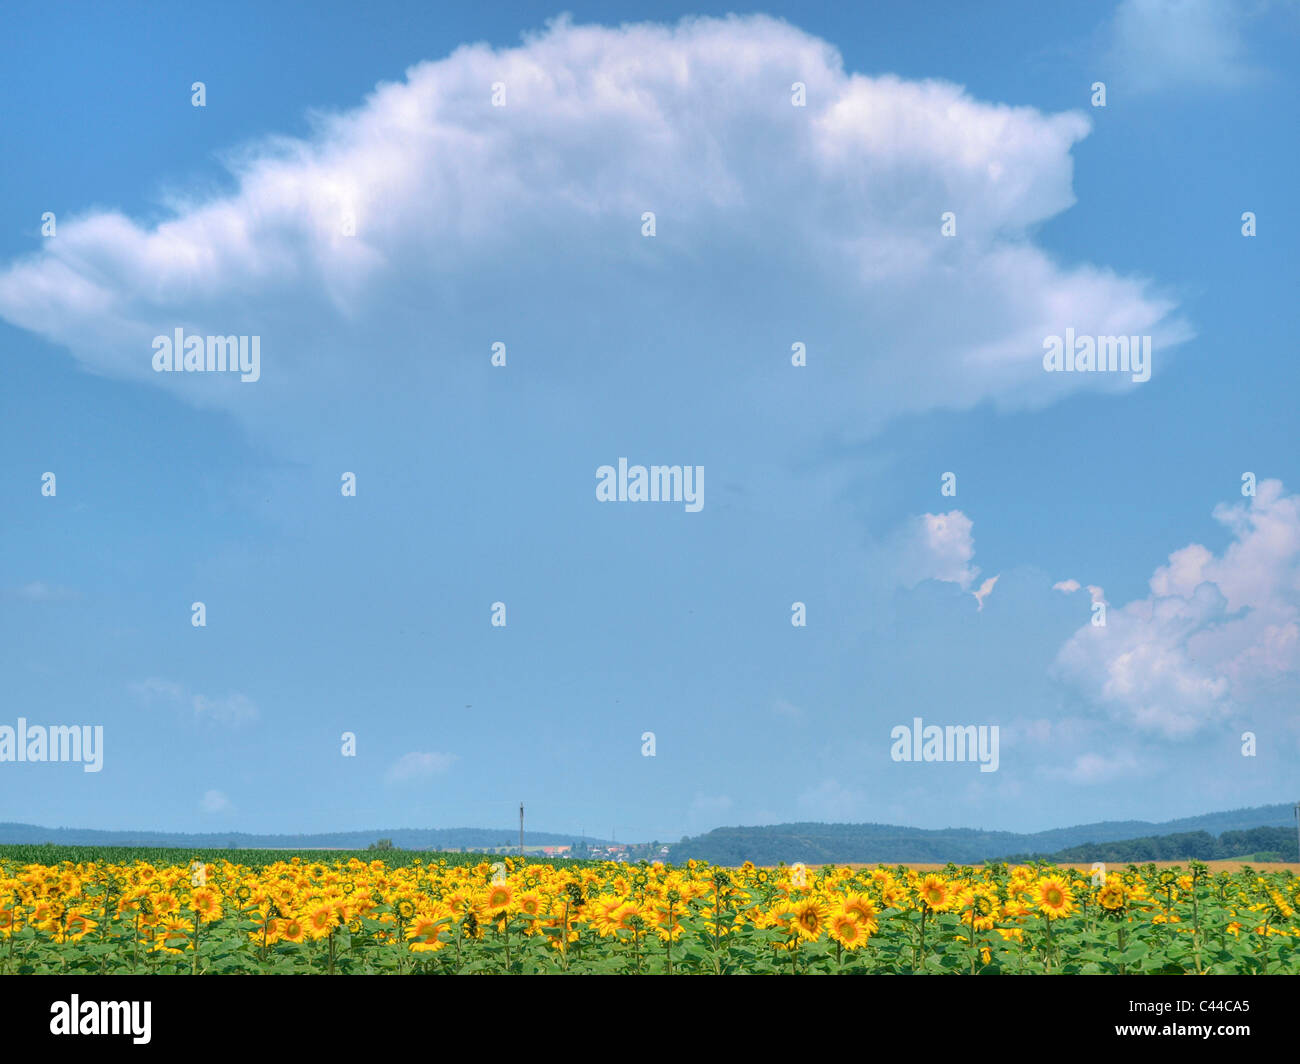 Leaves, yellow, storm cloud, cloud, green, seeds, sperms, sunflowers, agriculture, canton Zurich, Switzerland, - Stock Image